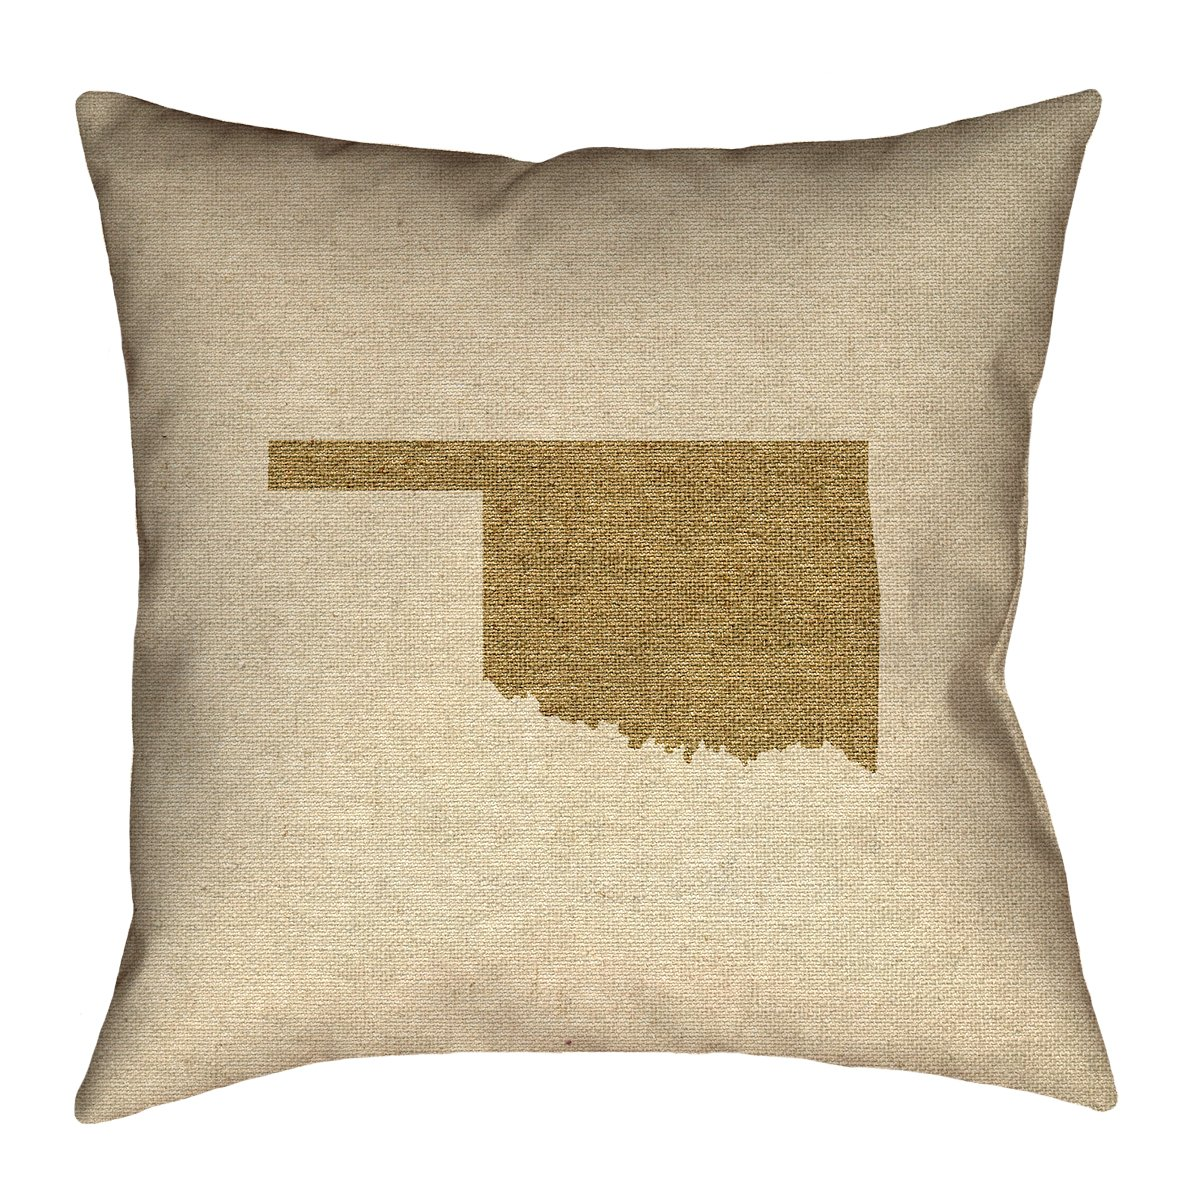 ArtVerse Katelyn Smith 14 x 14 Poly Twill Double Sided Print with Concealed Zipper /& Insert Oklahoma Canvas Pillow